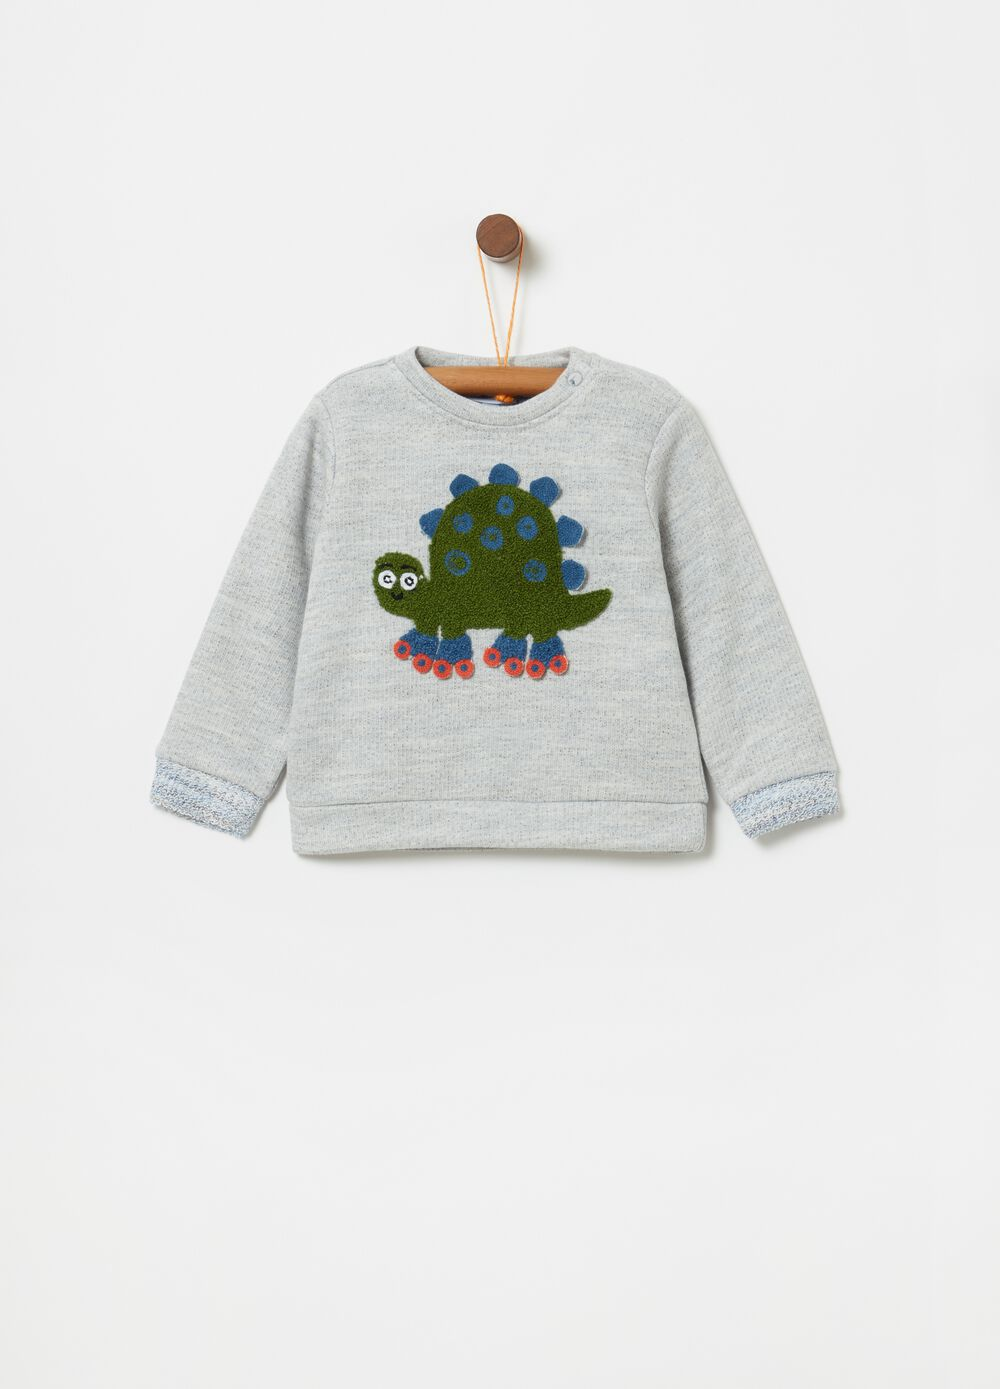 Round-neck sweater with dinosaur application